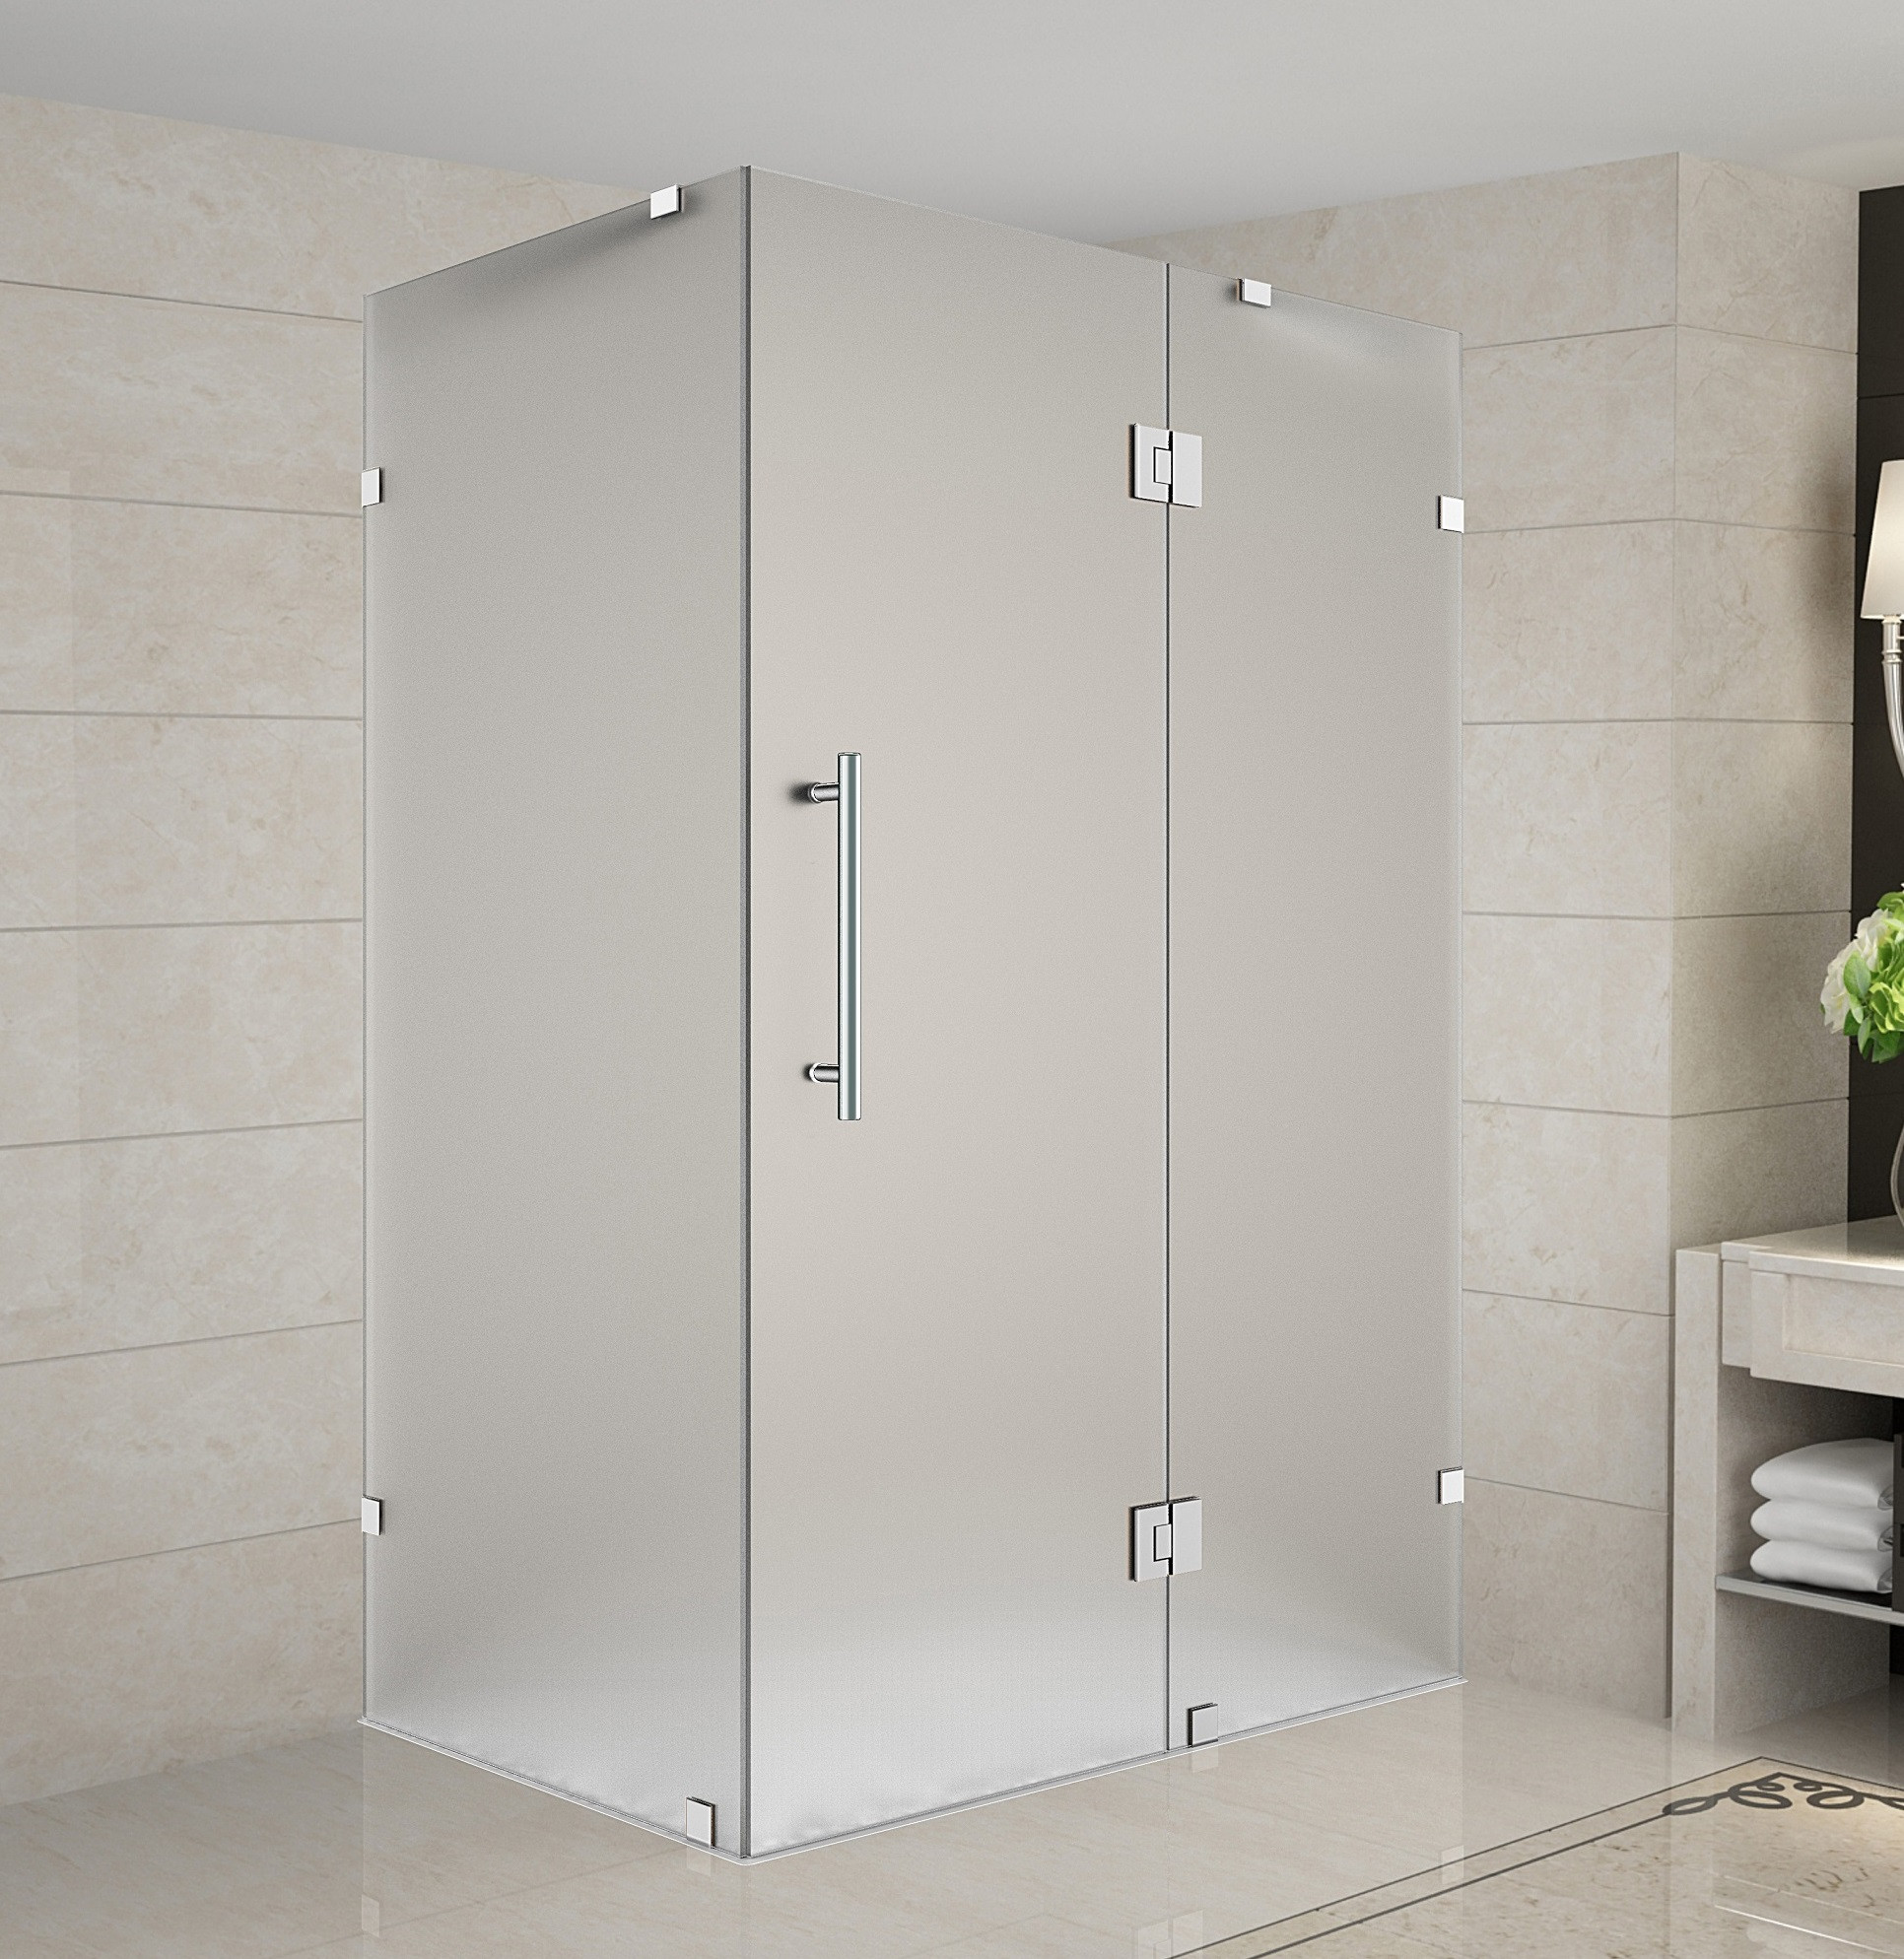 Aston SEN987F-SS-3536-10 Completely Frameless Frosted Glass Shower Enclosure In Stainless Steel